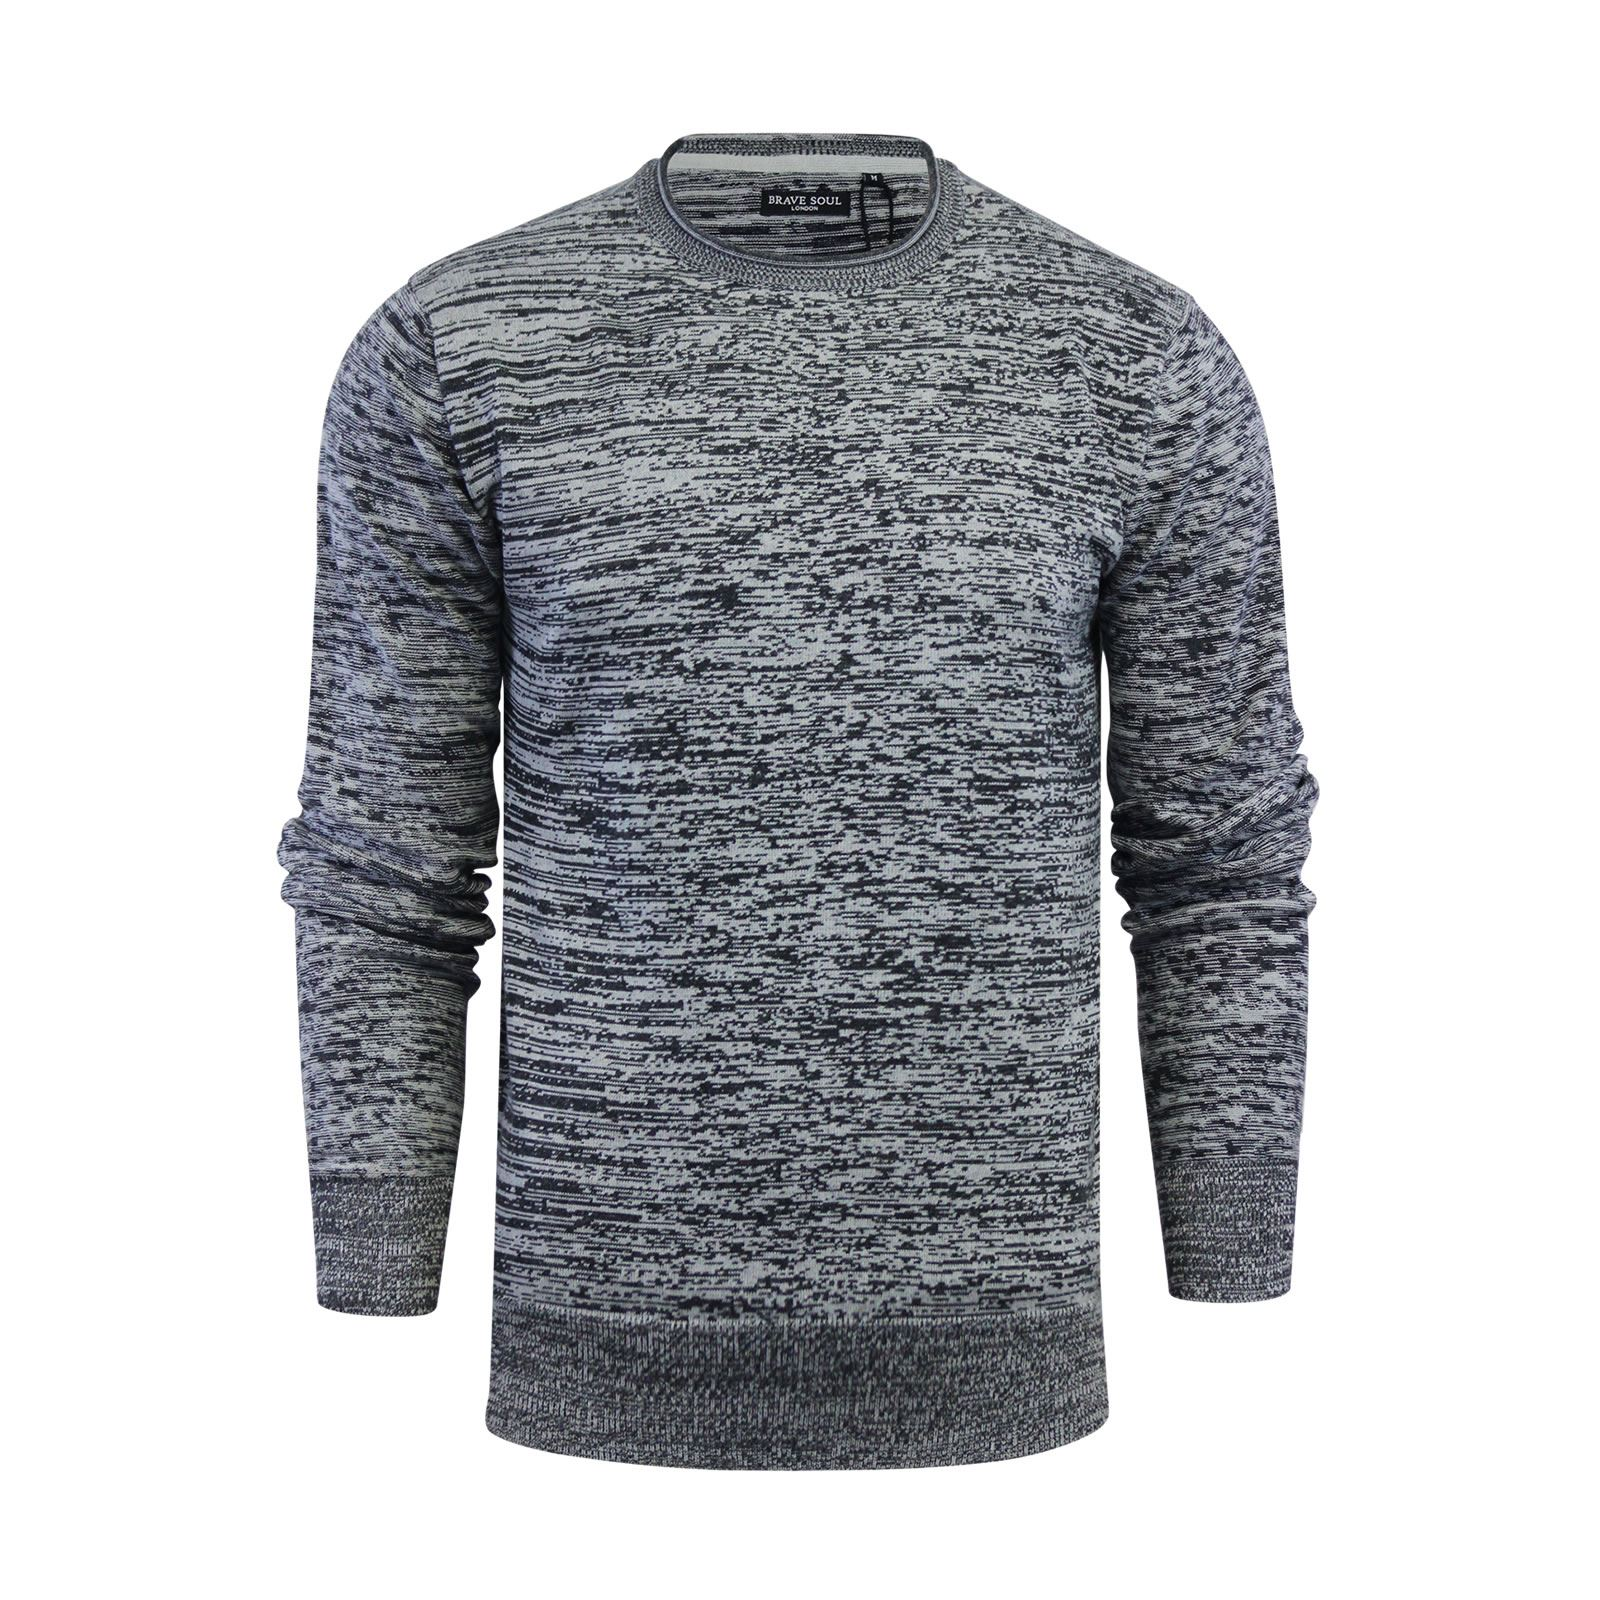 Mens-Jumper-Brave-Soul-Knitted-Sweater-In-Various-Styles thumbnail 12